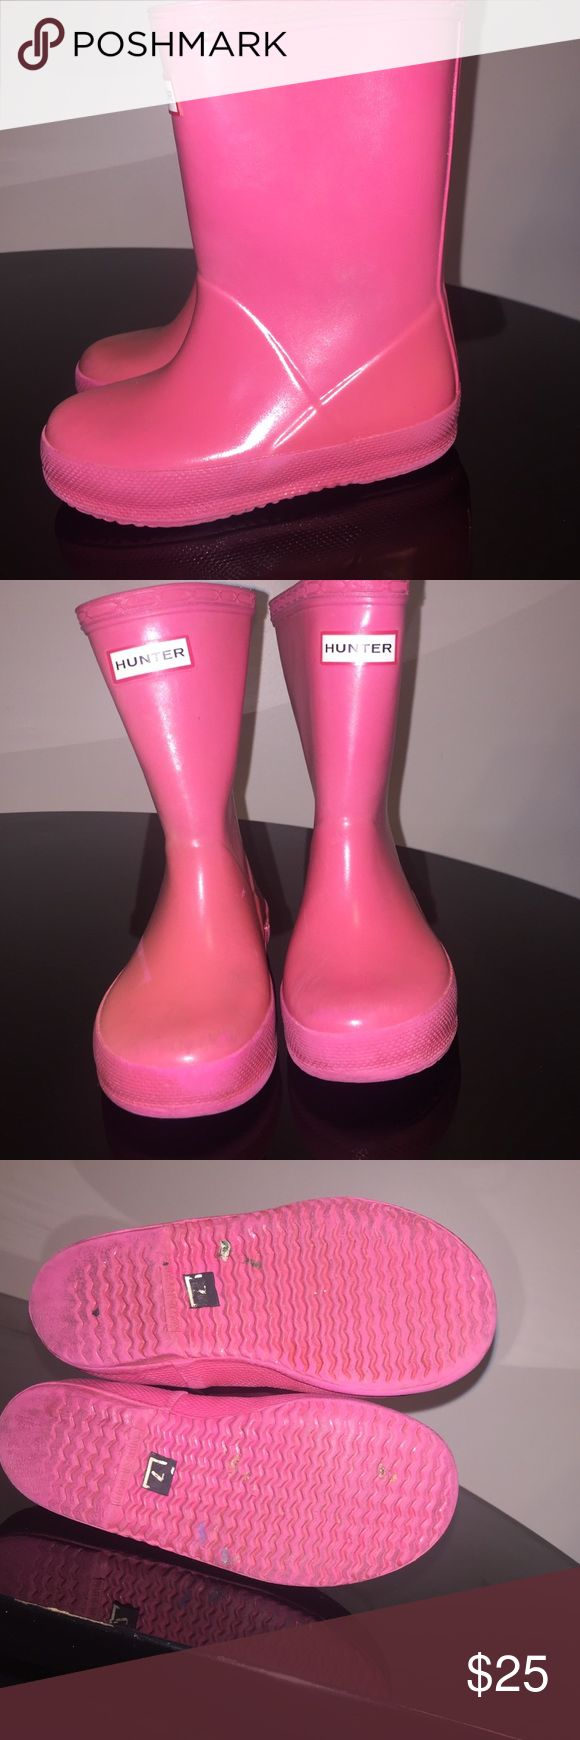 Kids rain Kids hunter rain boots size 7 for sale in very good condition very comfortable Hunter Boots Shoes Rain & Snow Boots